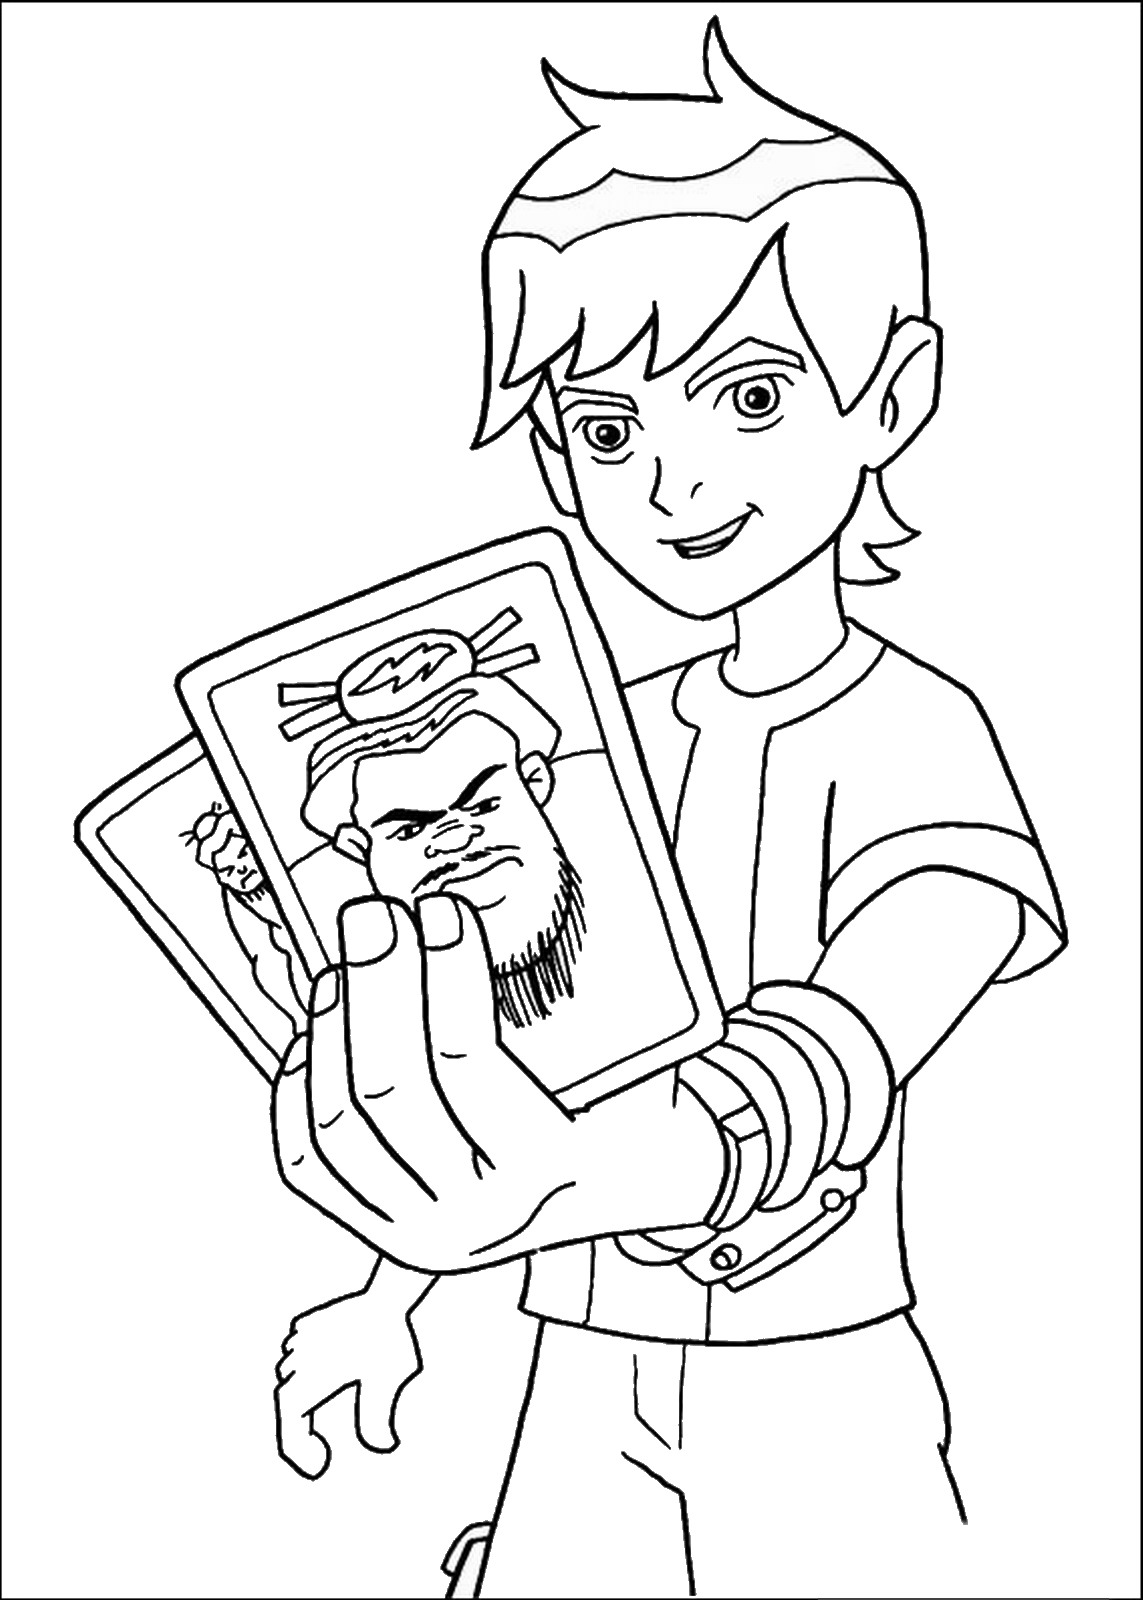 ben10 coloring printable ben ten coloring pages for kids cool2bkids coloring ben10